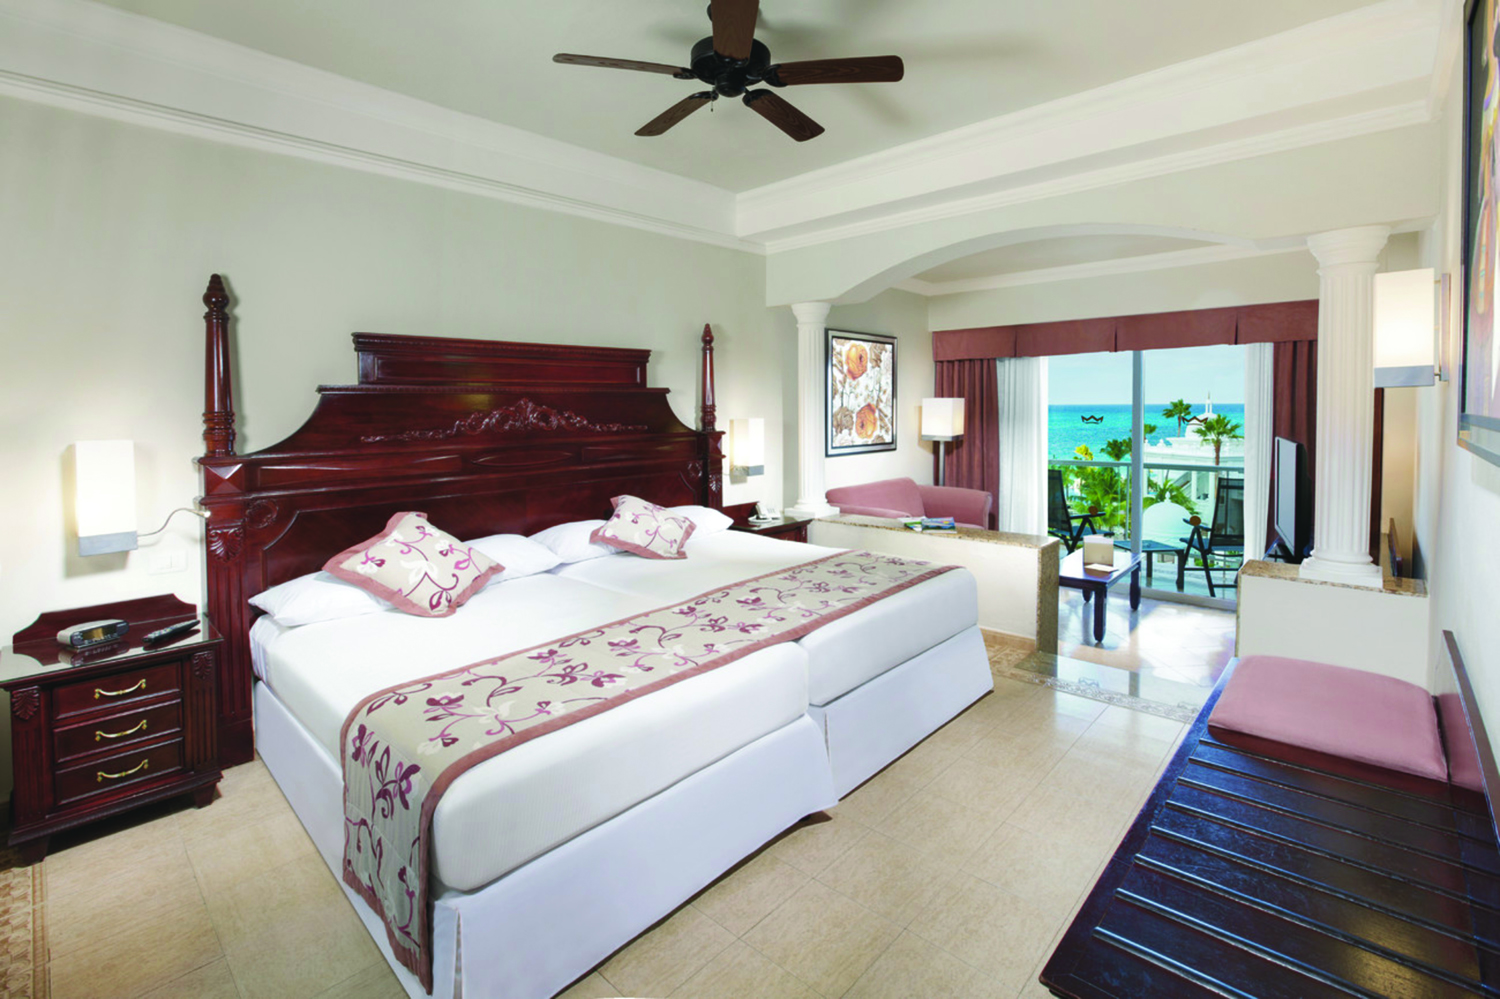 Jr. suite at the RIU Palace Las Americas in Cancun.